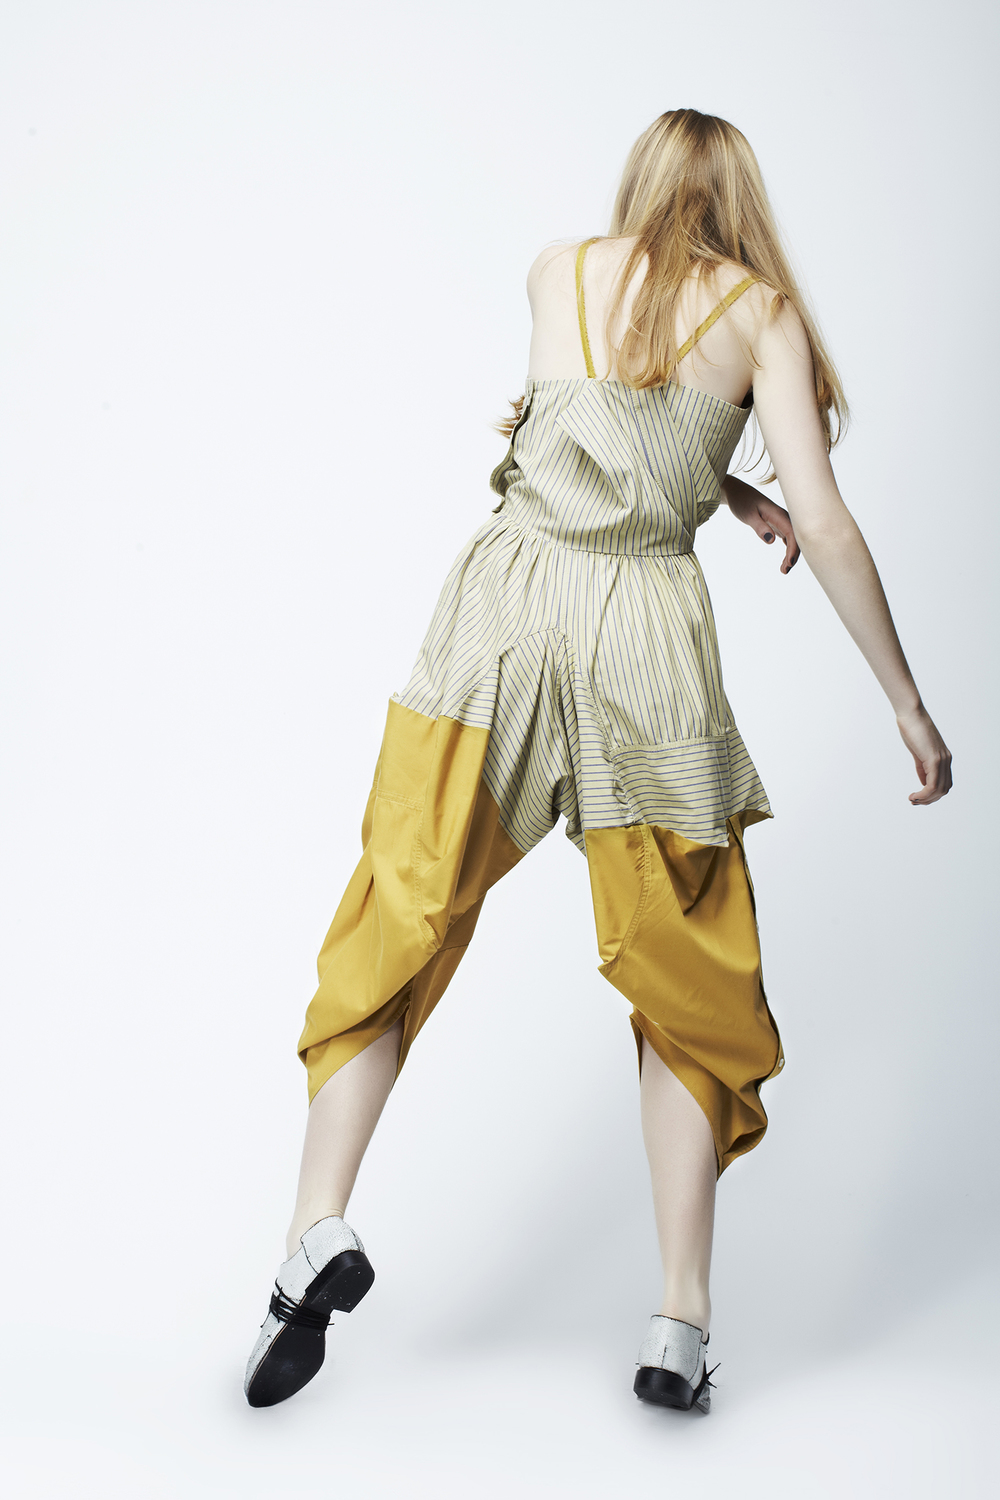 1 + 1 equals a jumpsuit, by Ellie Mücke 2010 Photography by Tomas Friml